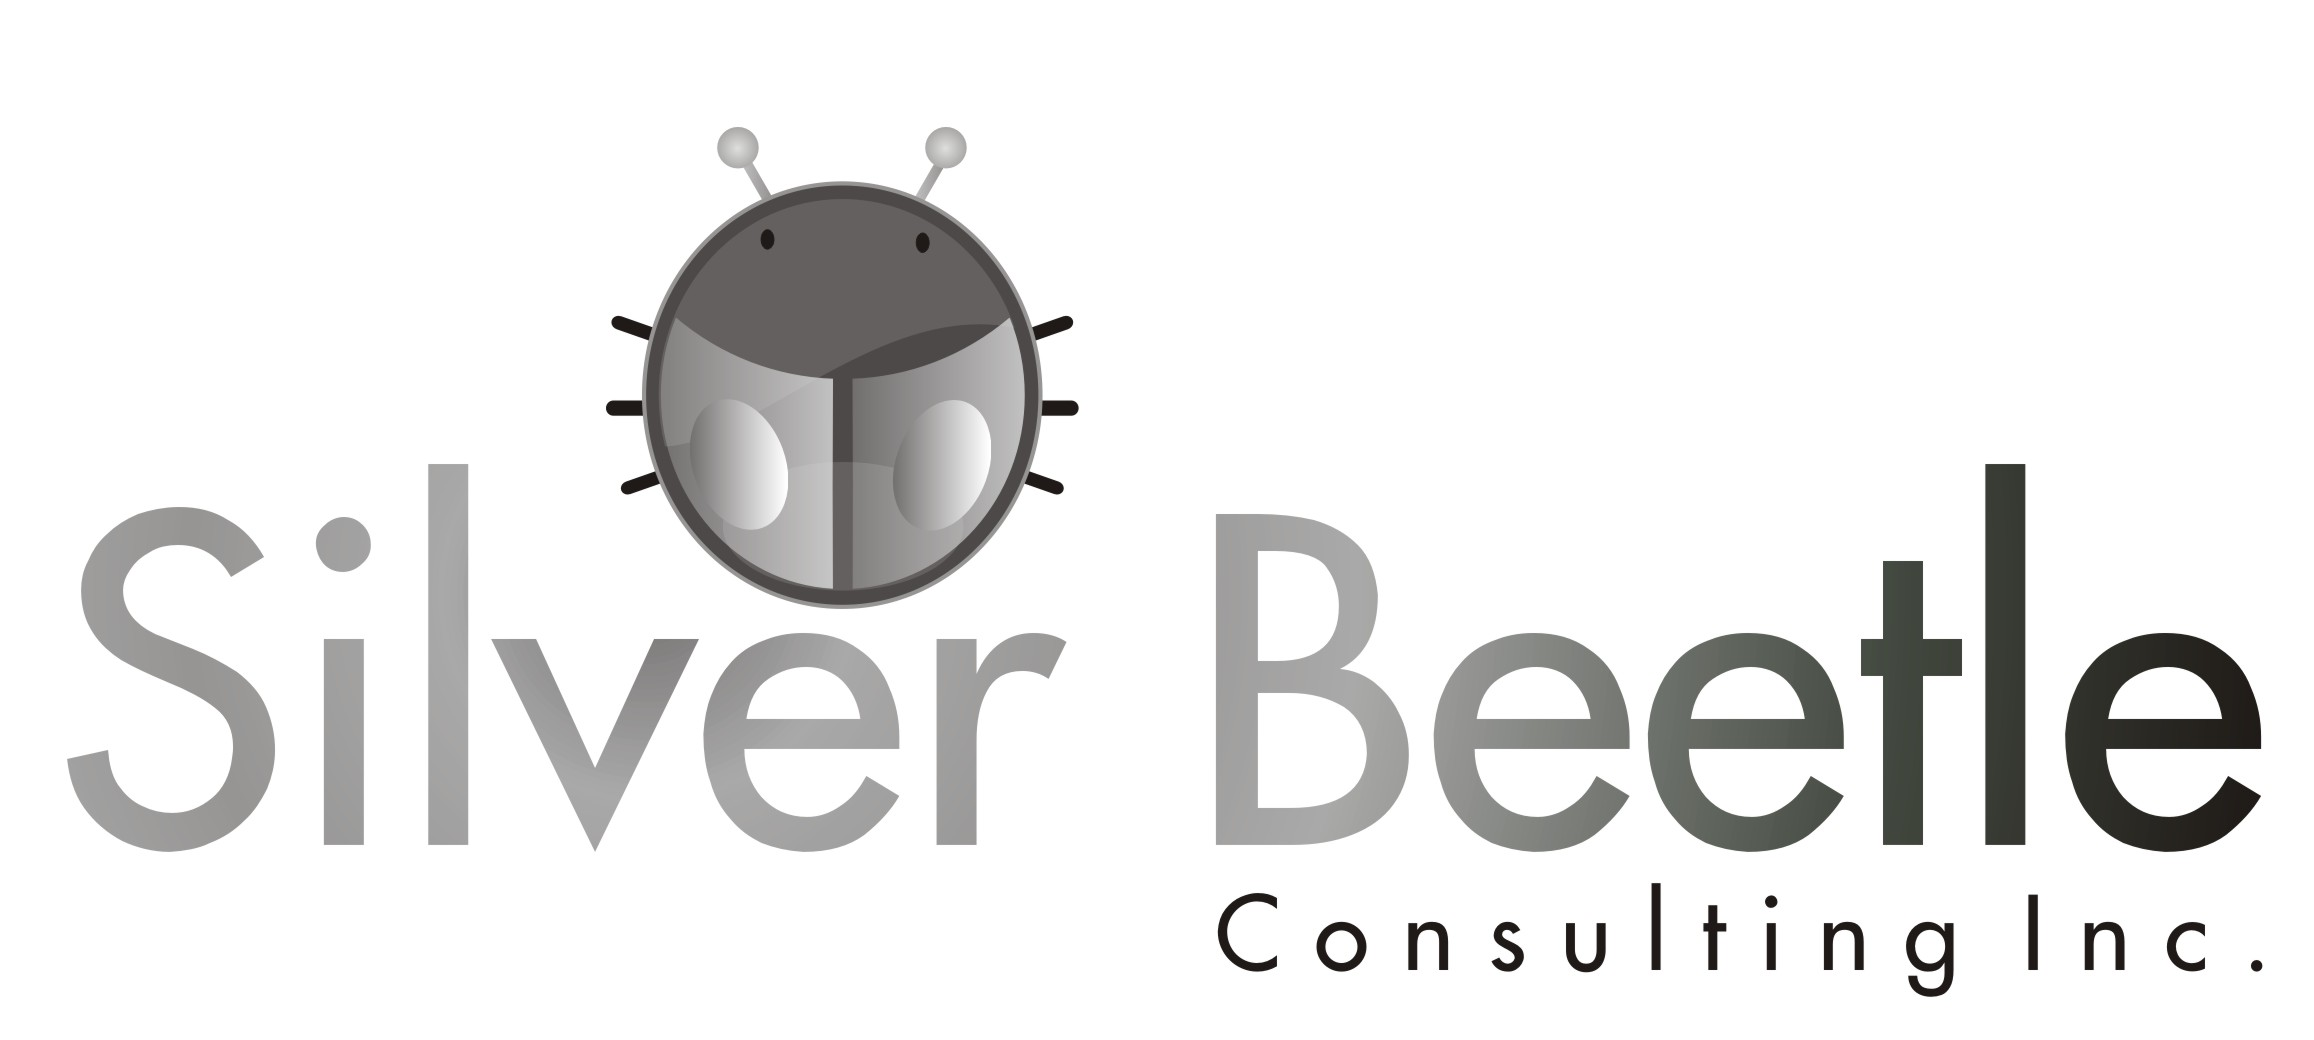 Logo Design by Private User - Entry No. 12 in the Logo Design Contest Silver Beetle Consulting Inc. Logo Design.